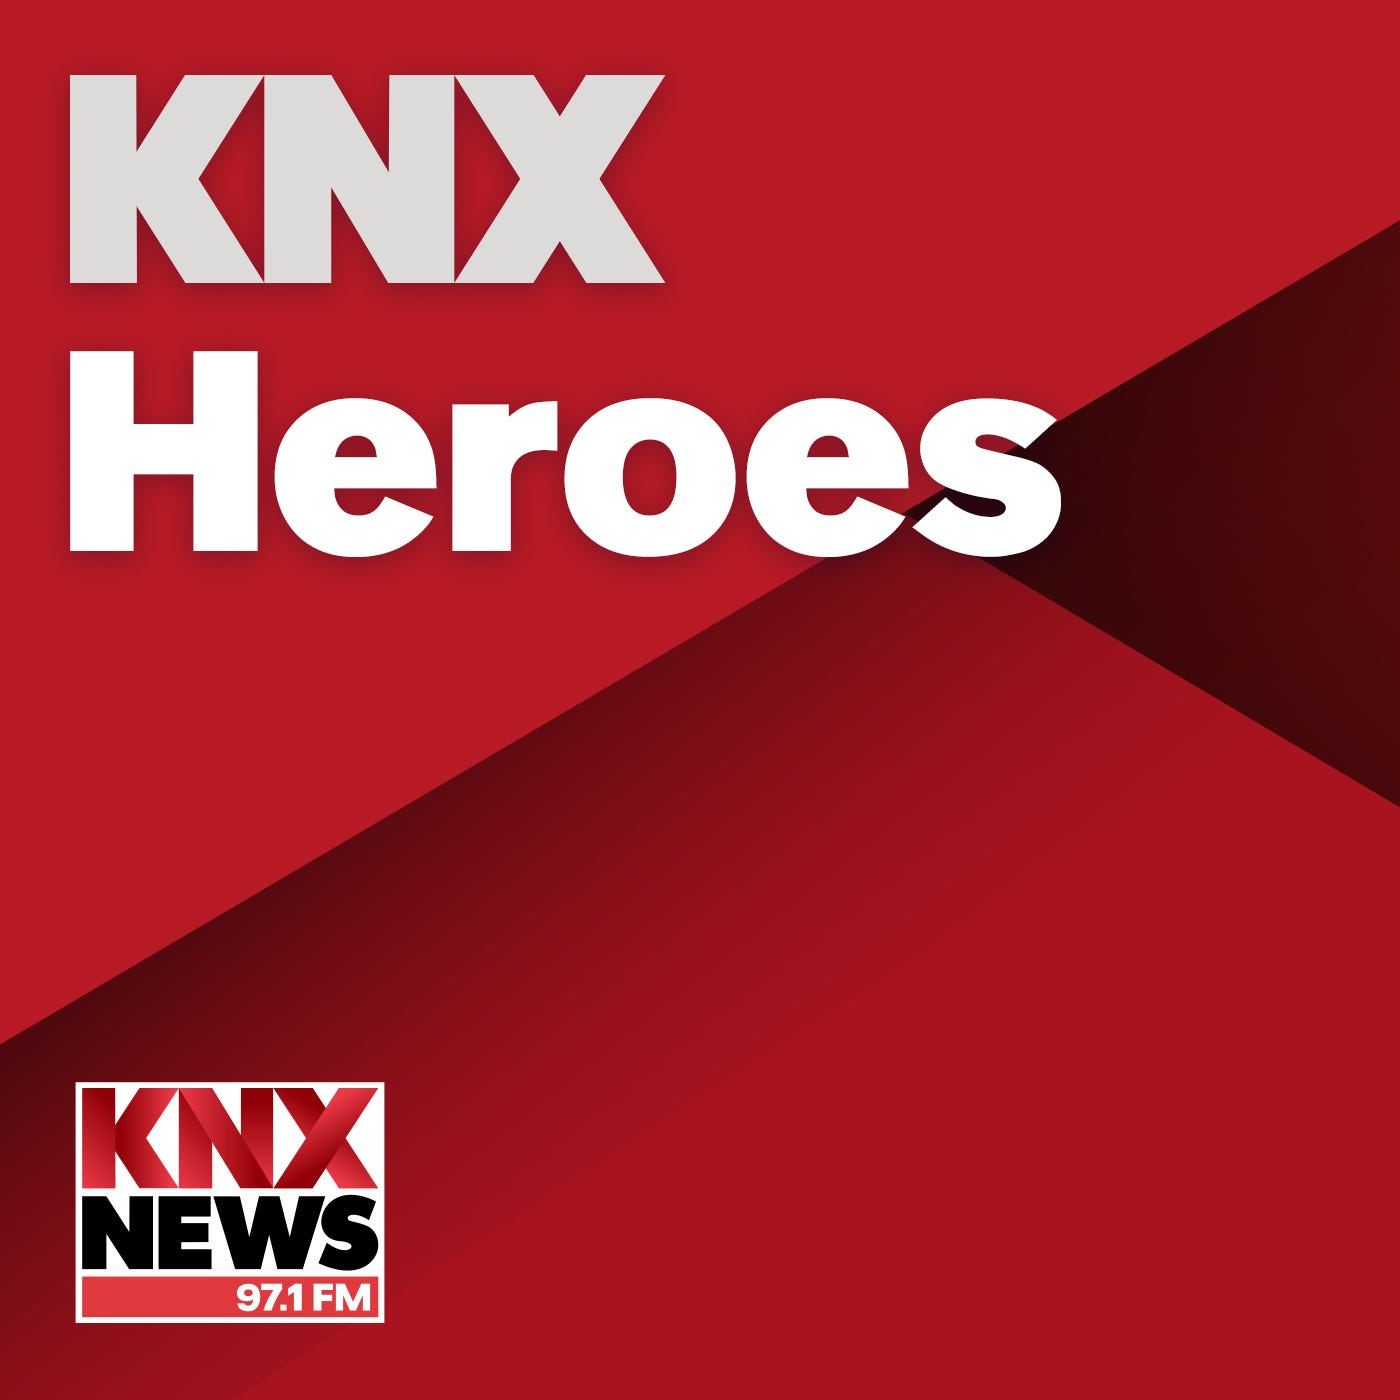 KNX Hero of the Week